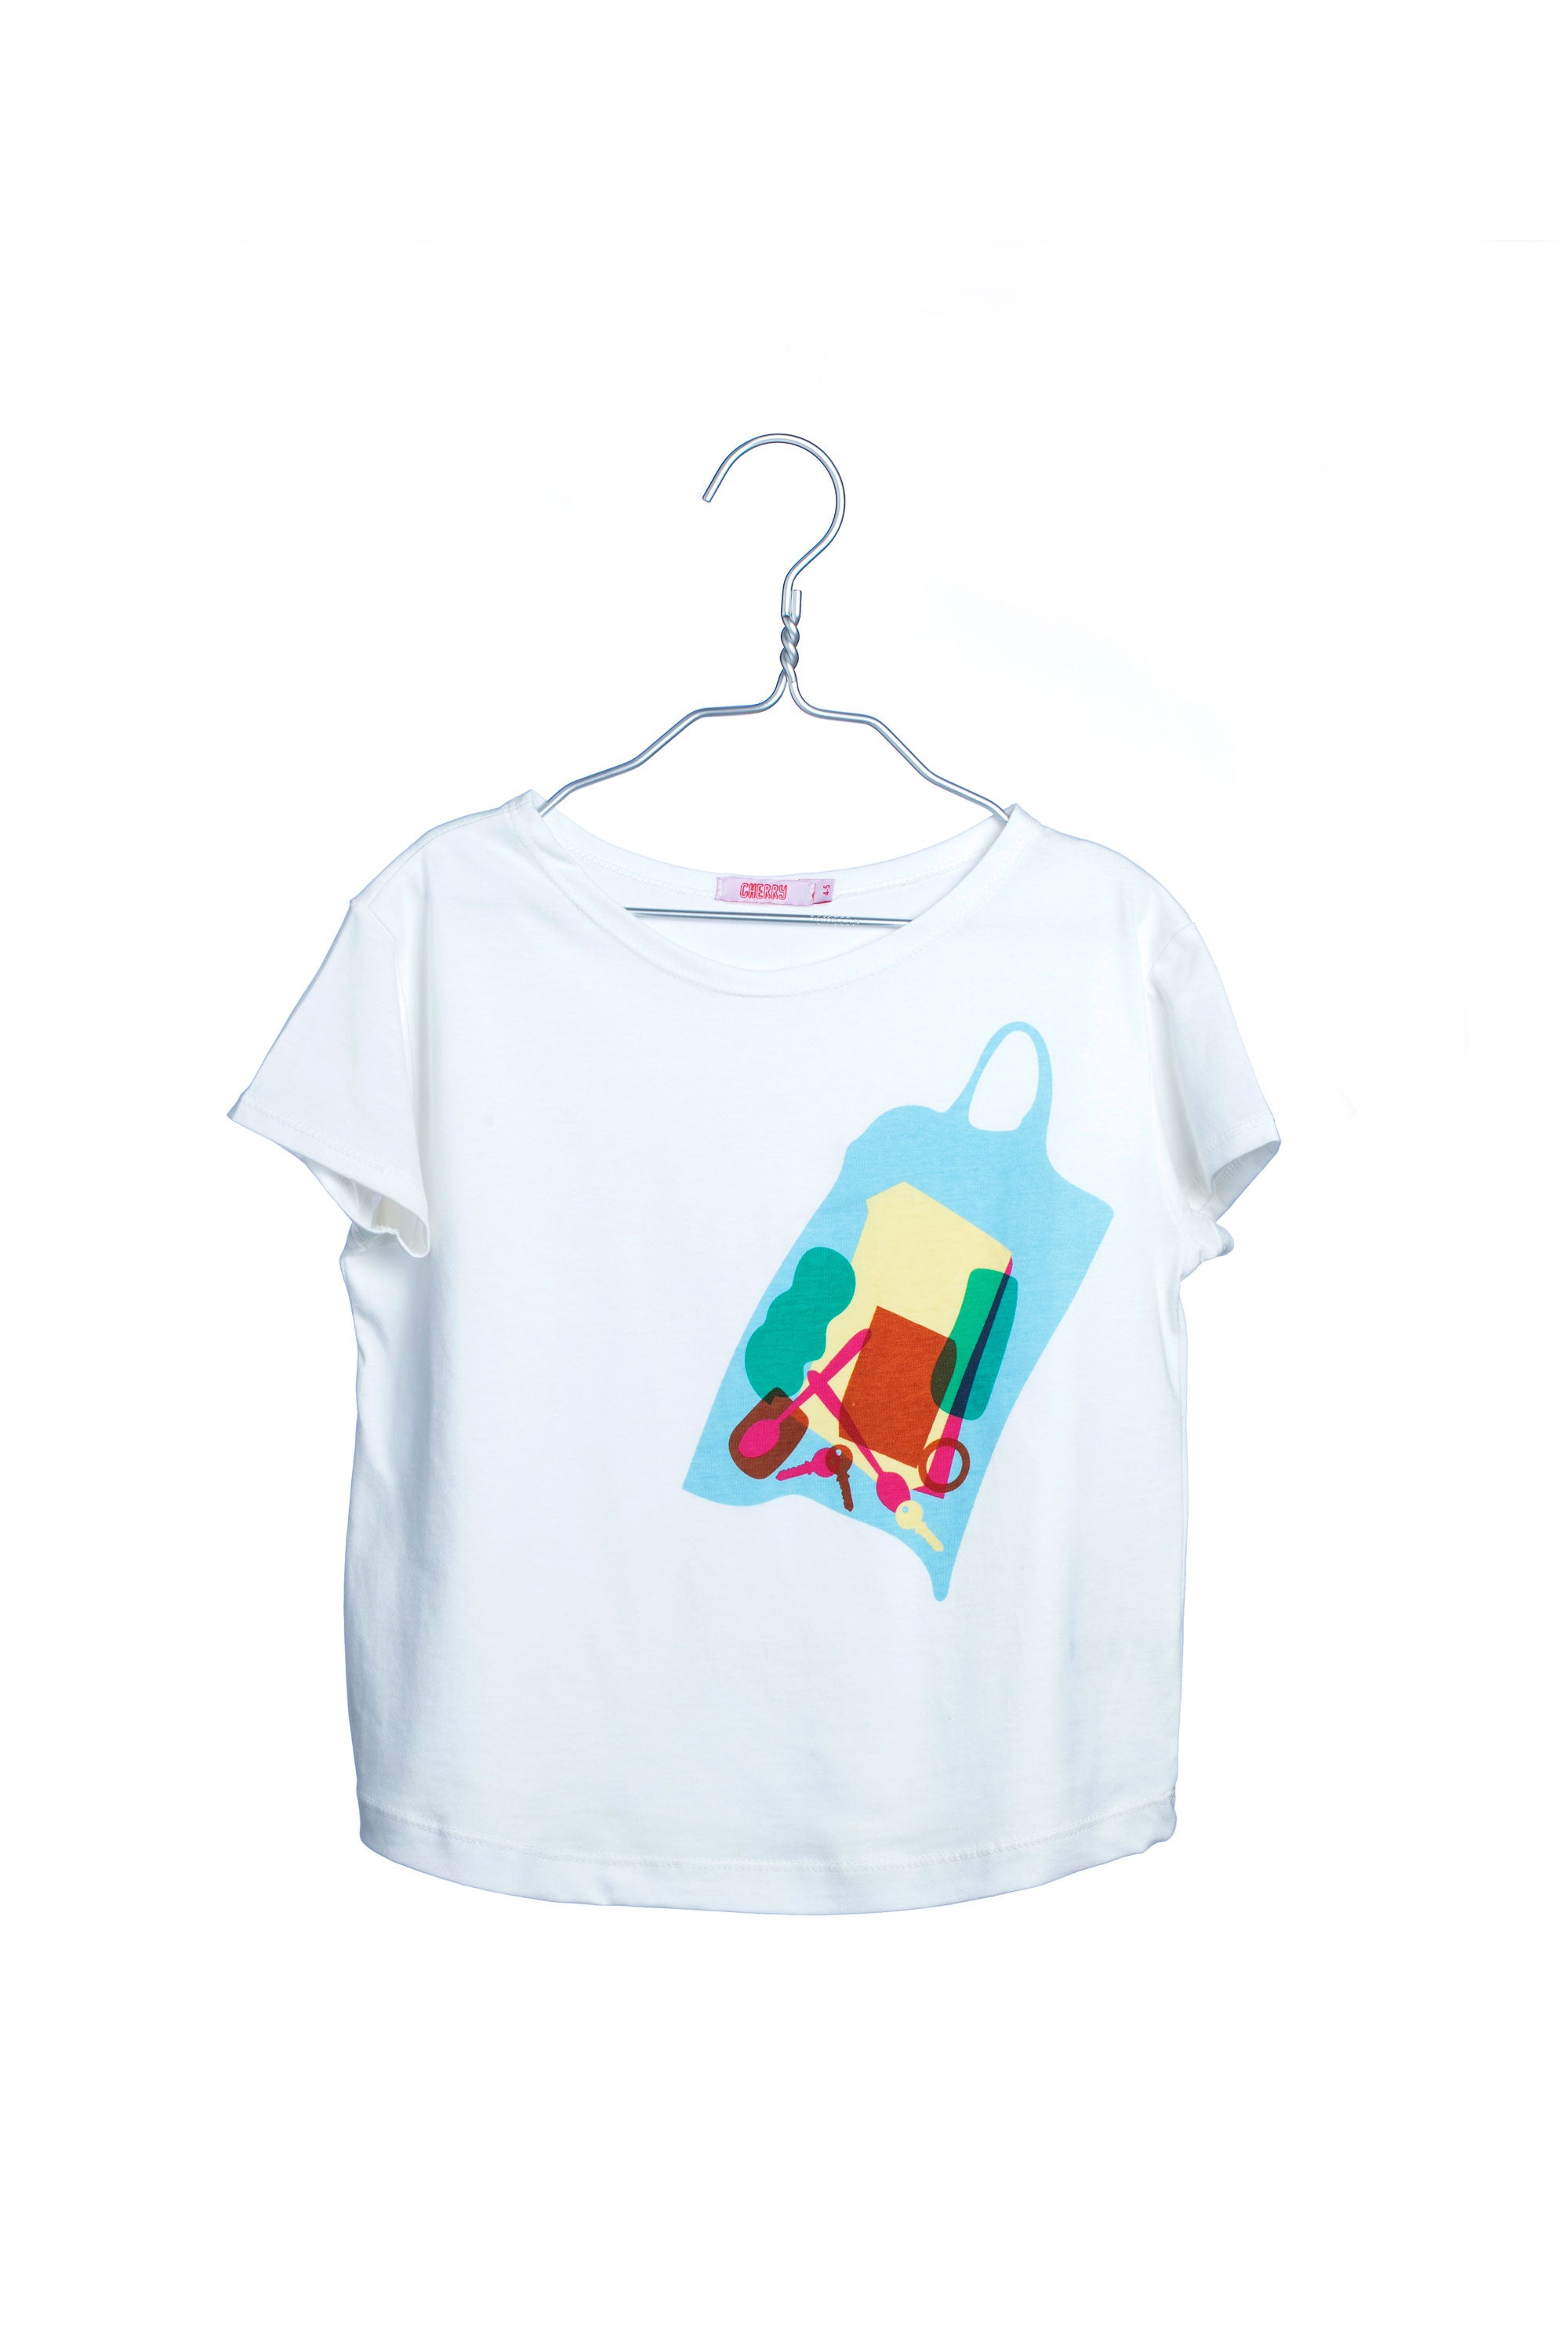 1712 Full Bag Tee - Blue